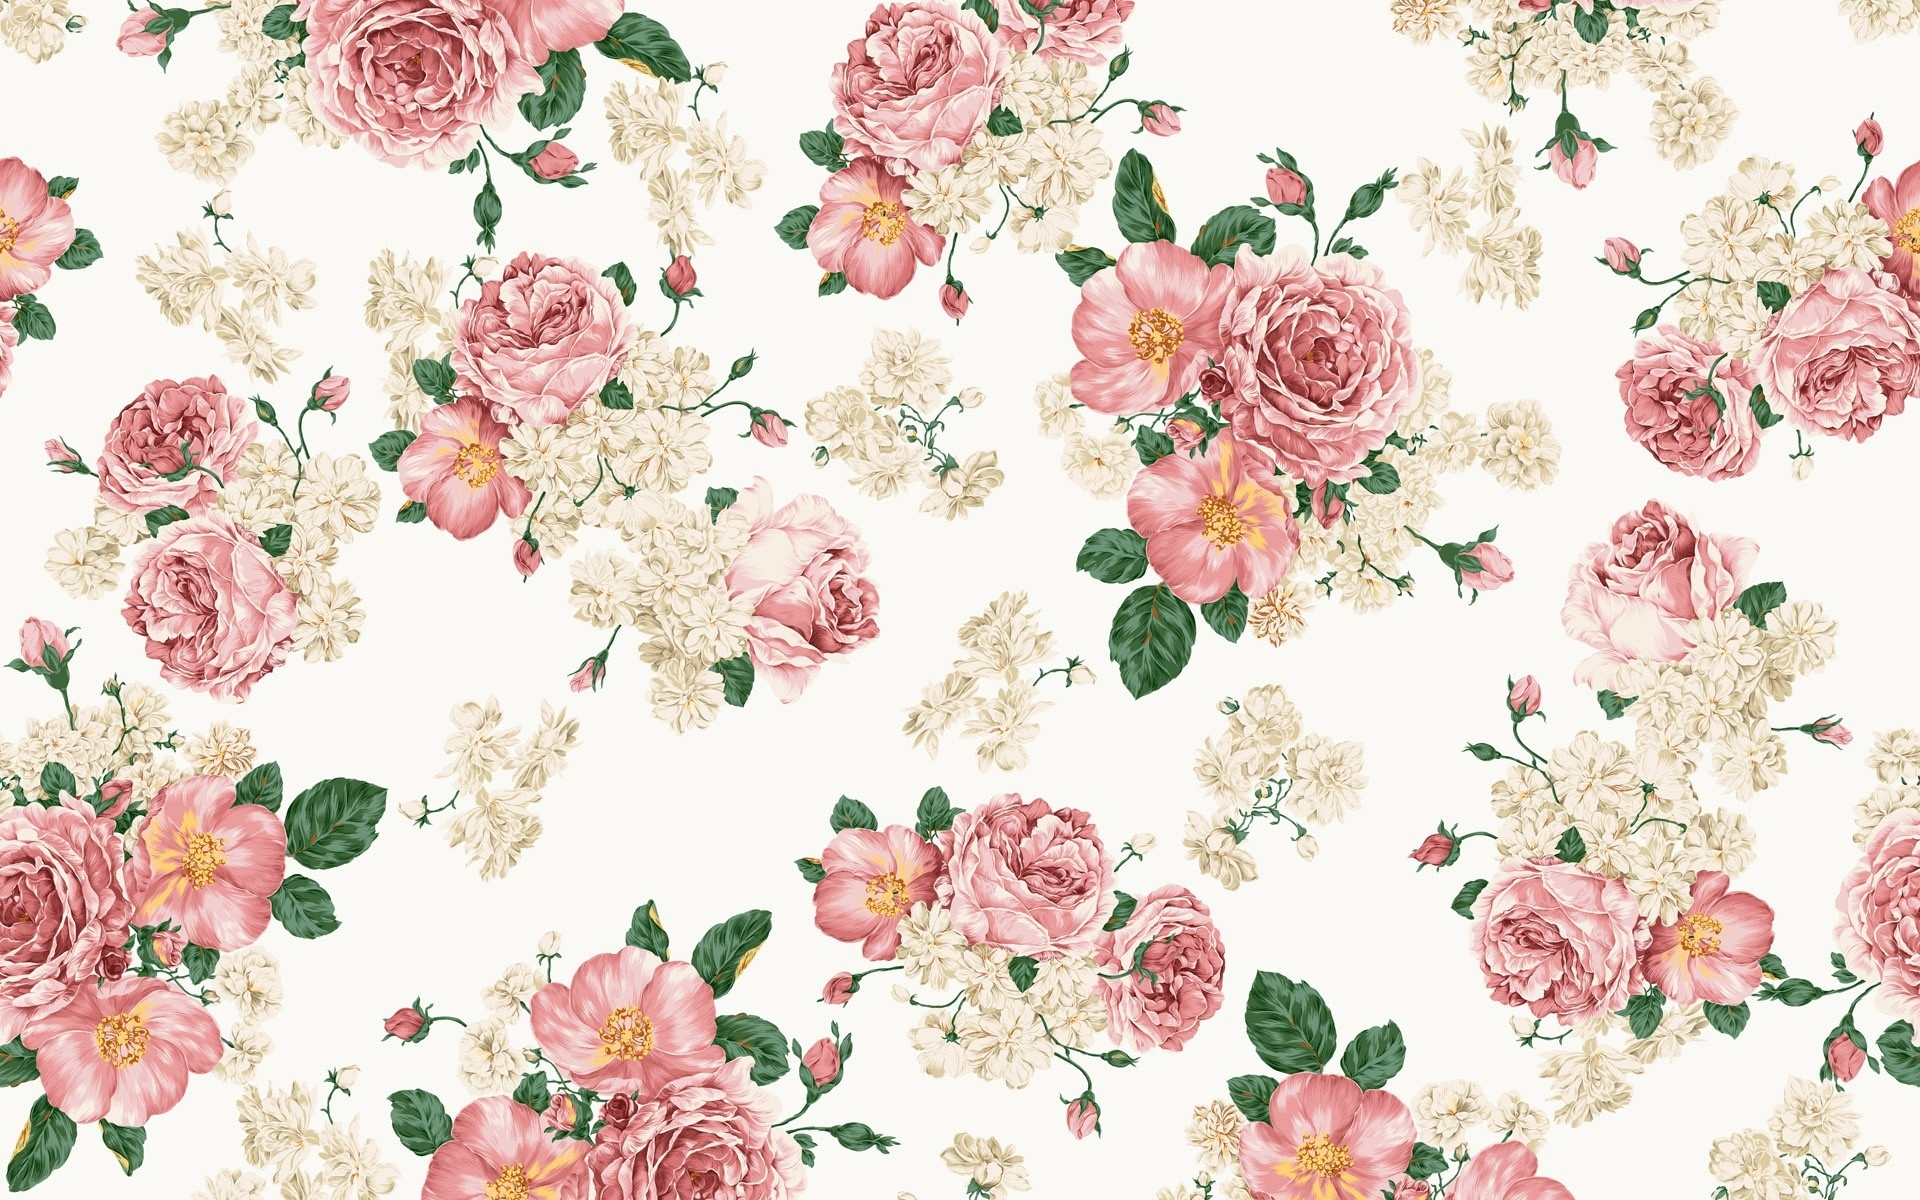 flower wallpaper tumblr flowers vintage